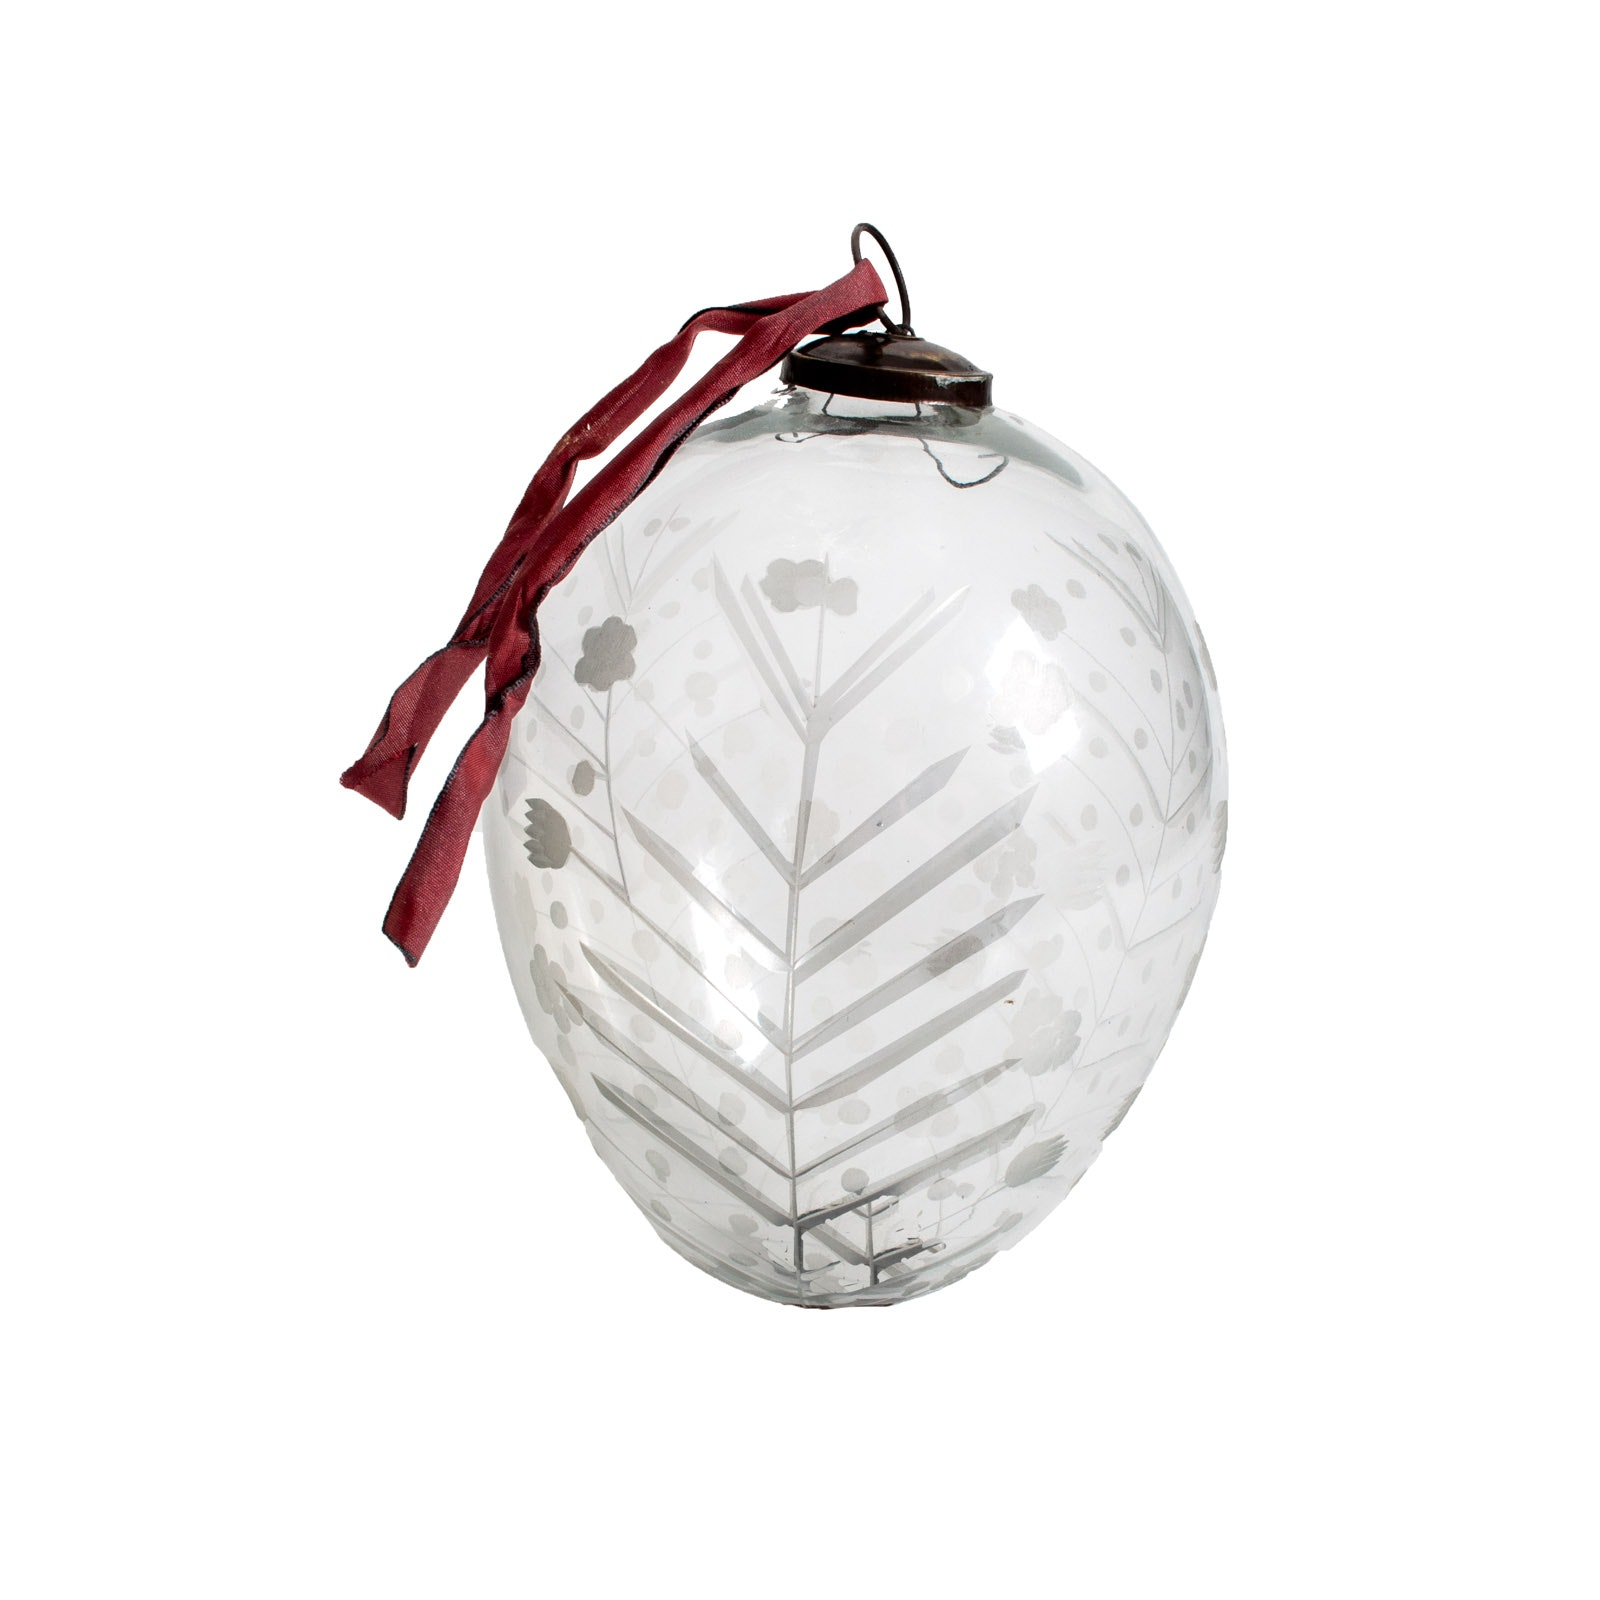 House of France Large Etched Glass Egg Ornament